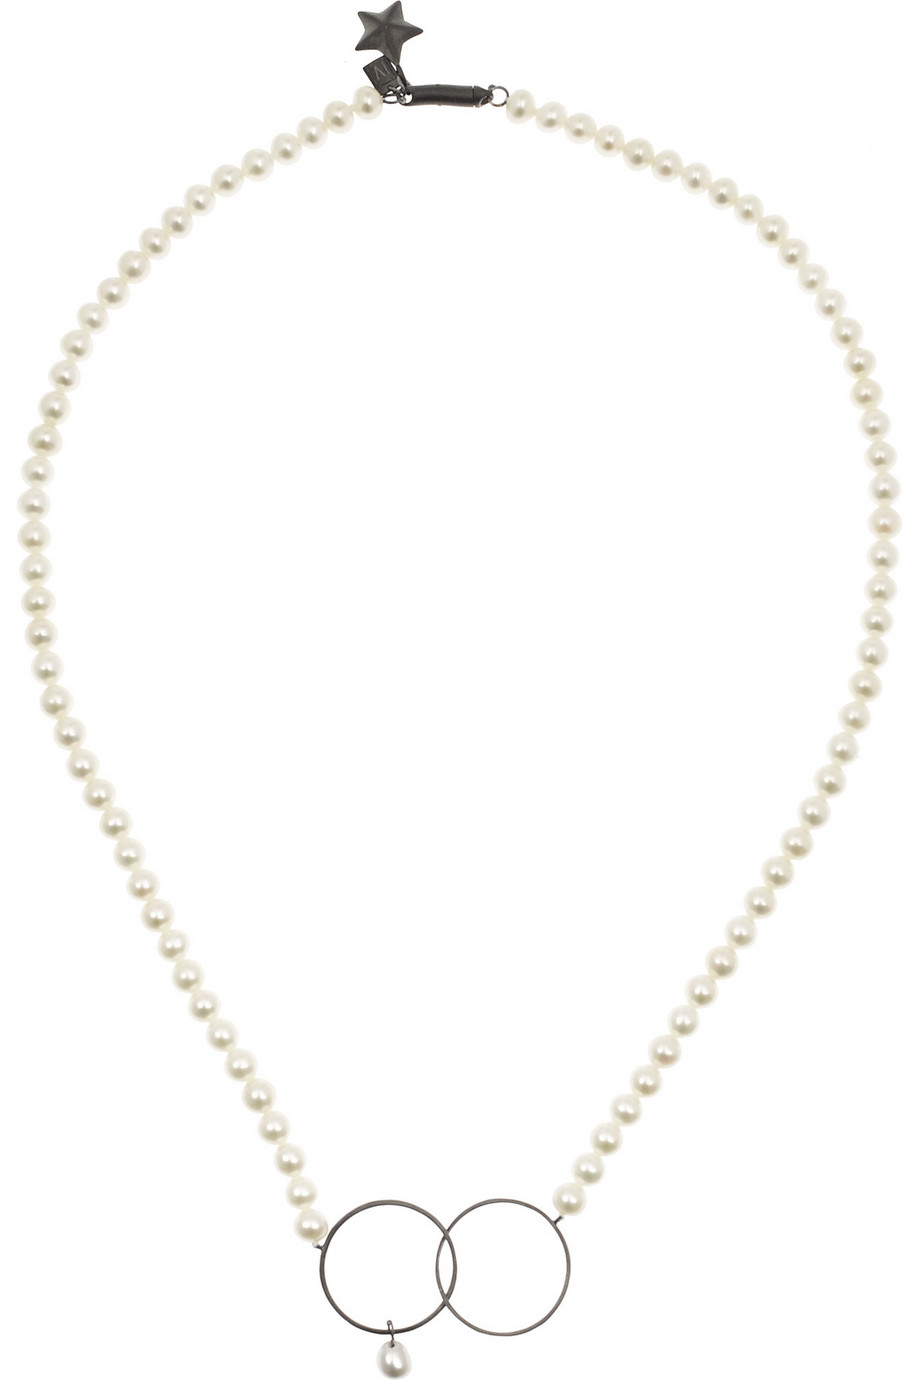 Pearl and Oxidized Silver Necklace, Inez and Vinoodh, Off-White, Women's